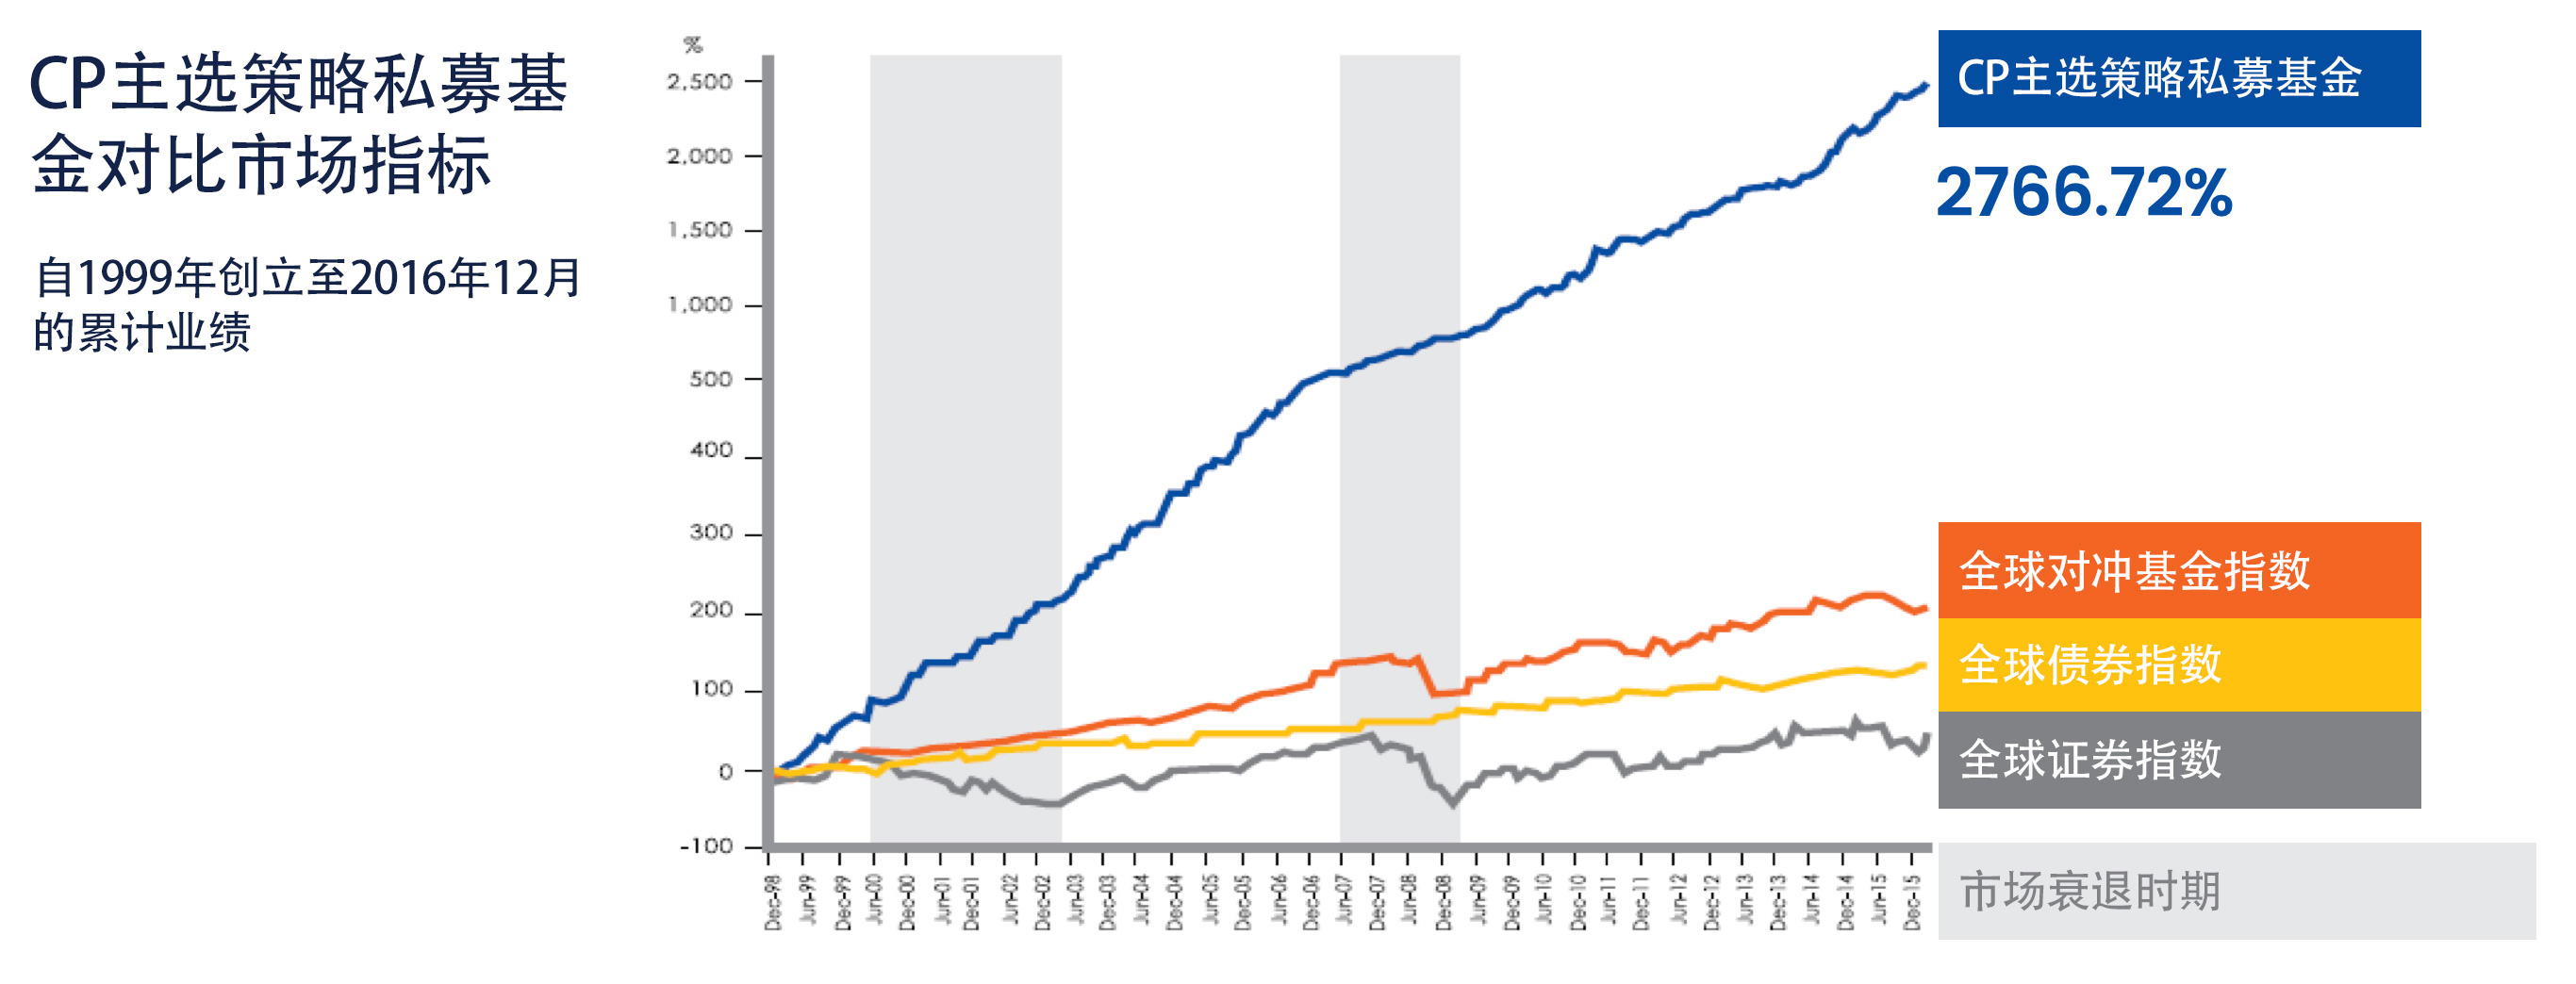 cp-global-mutual-funds-vs-hedge-funds-cps-cumulative-performance-chinese